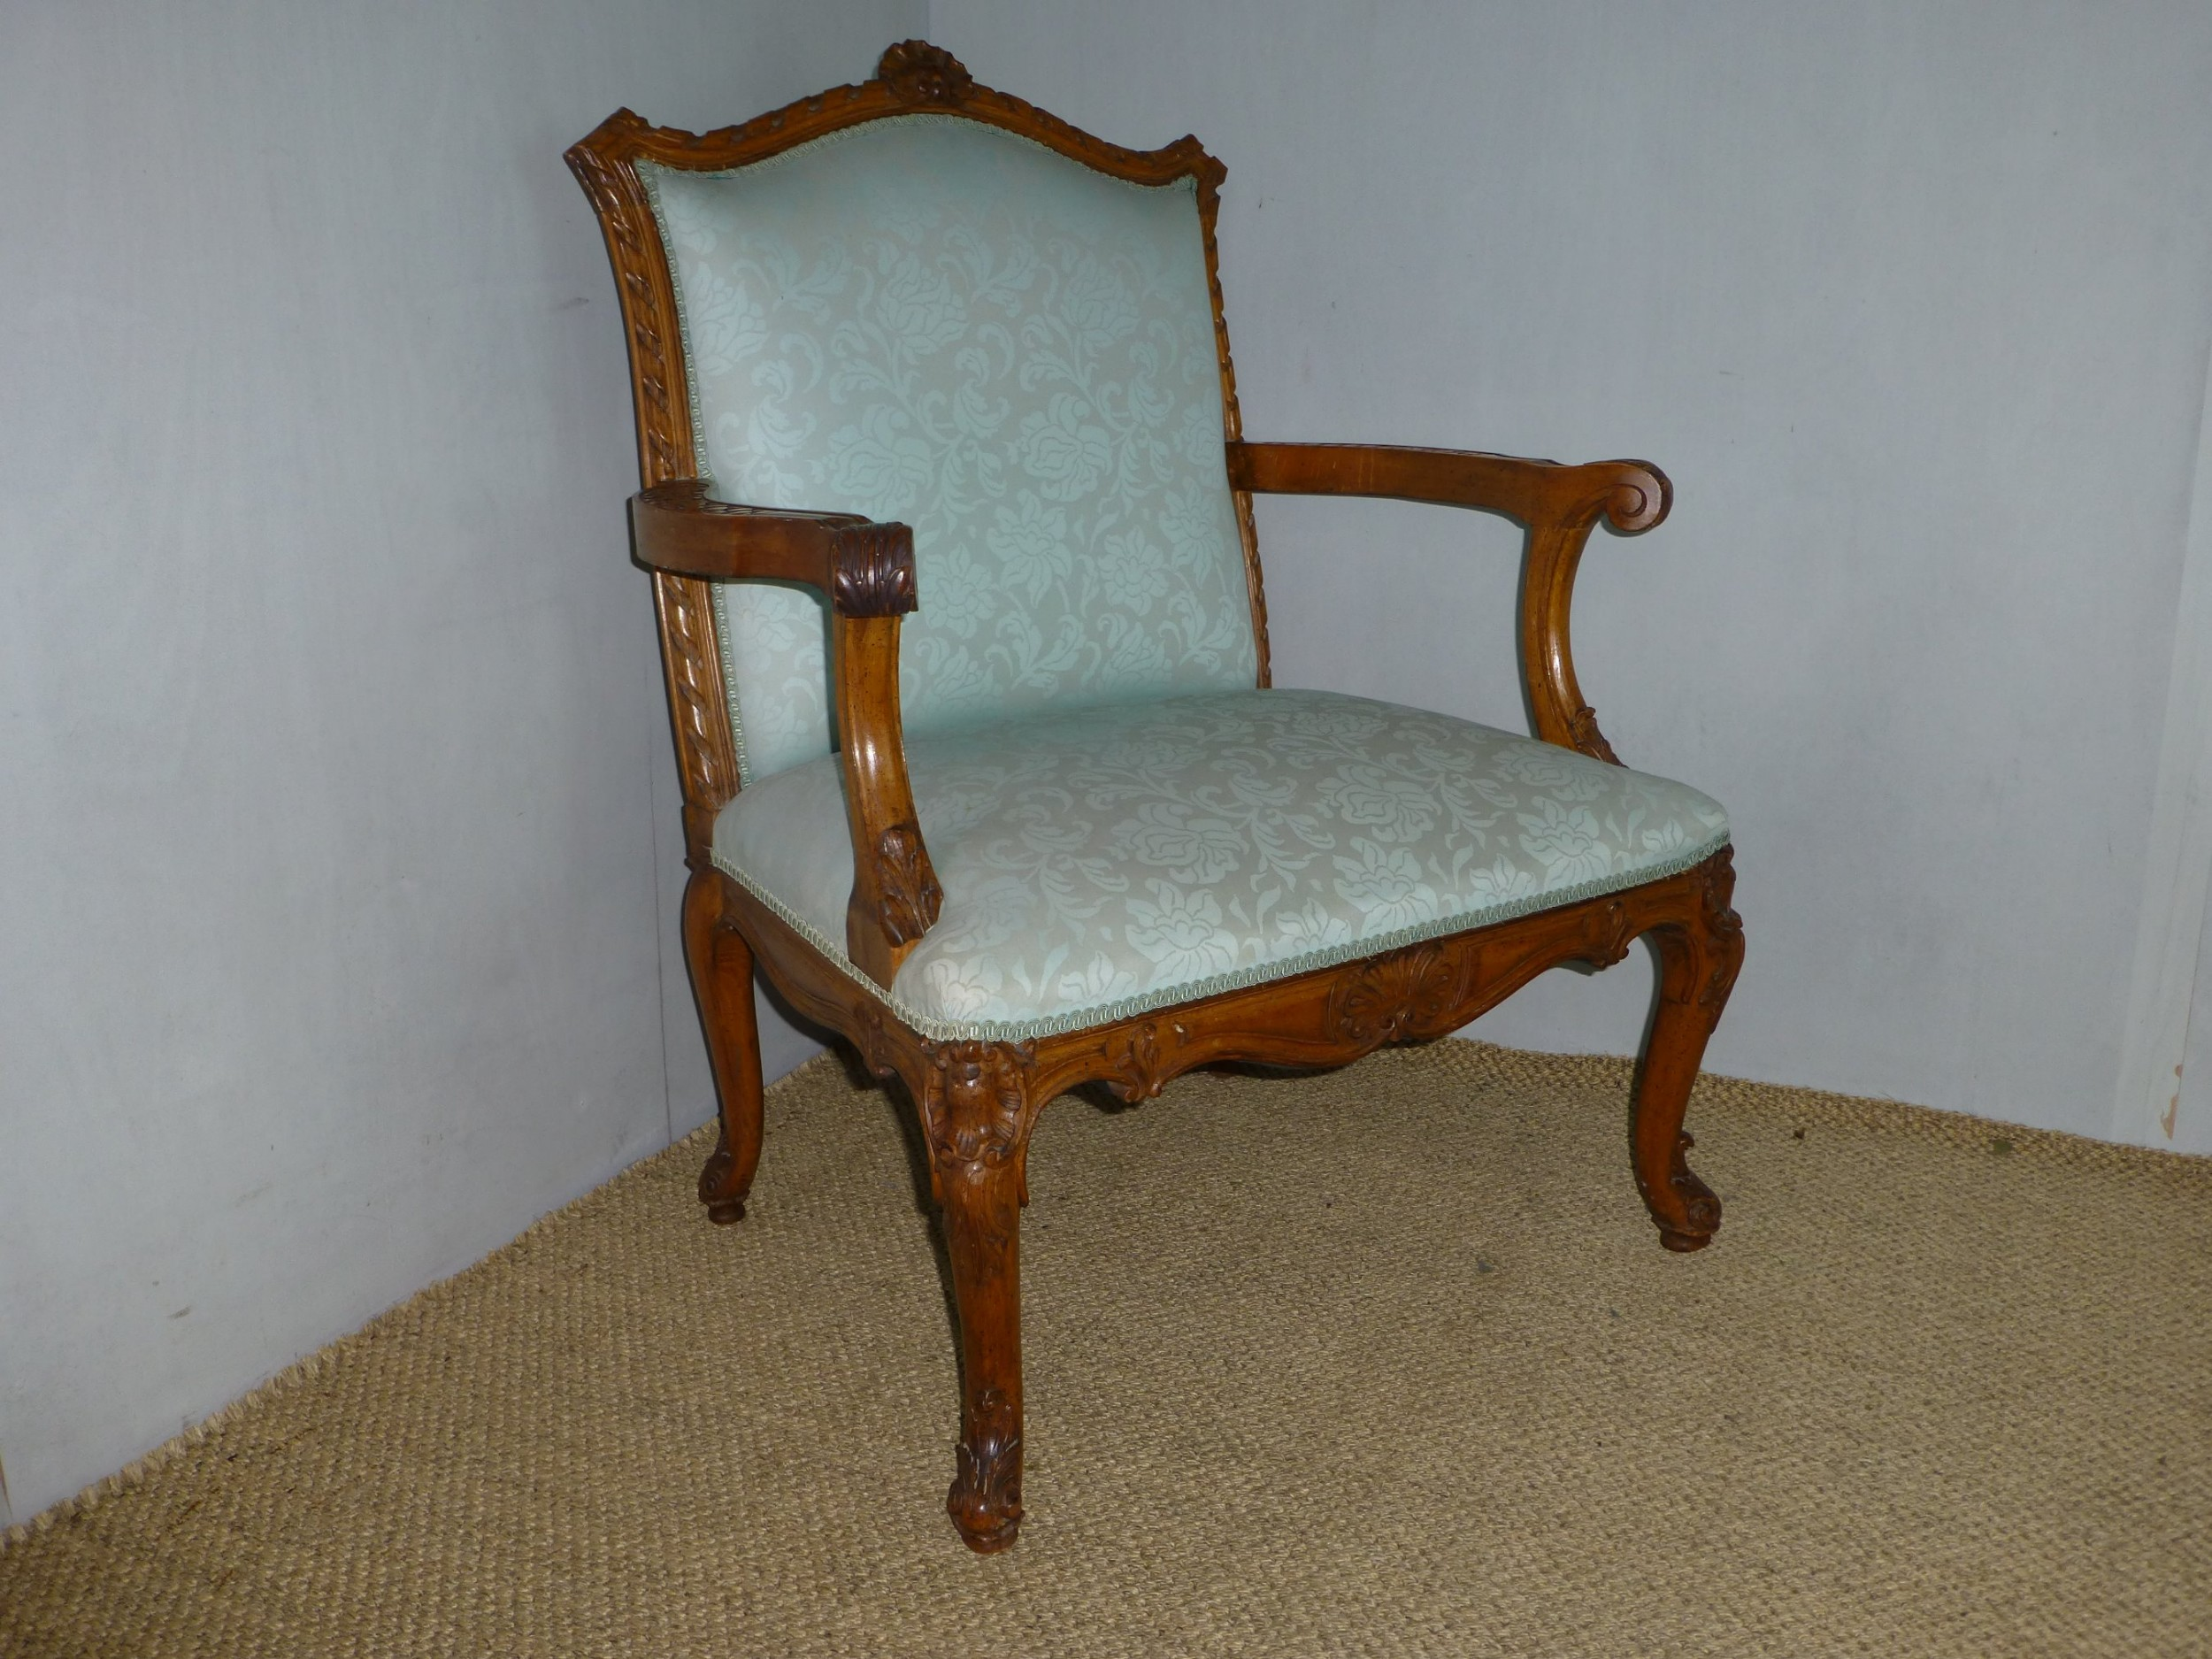 fabulous large quality 19th century walnut gainsborough fauteuil open elbow library upholstered arm chair